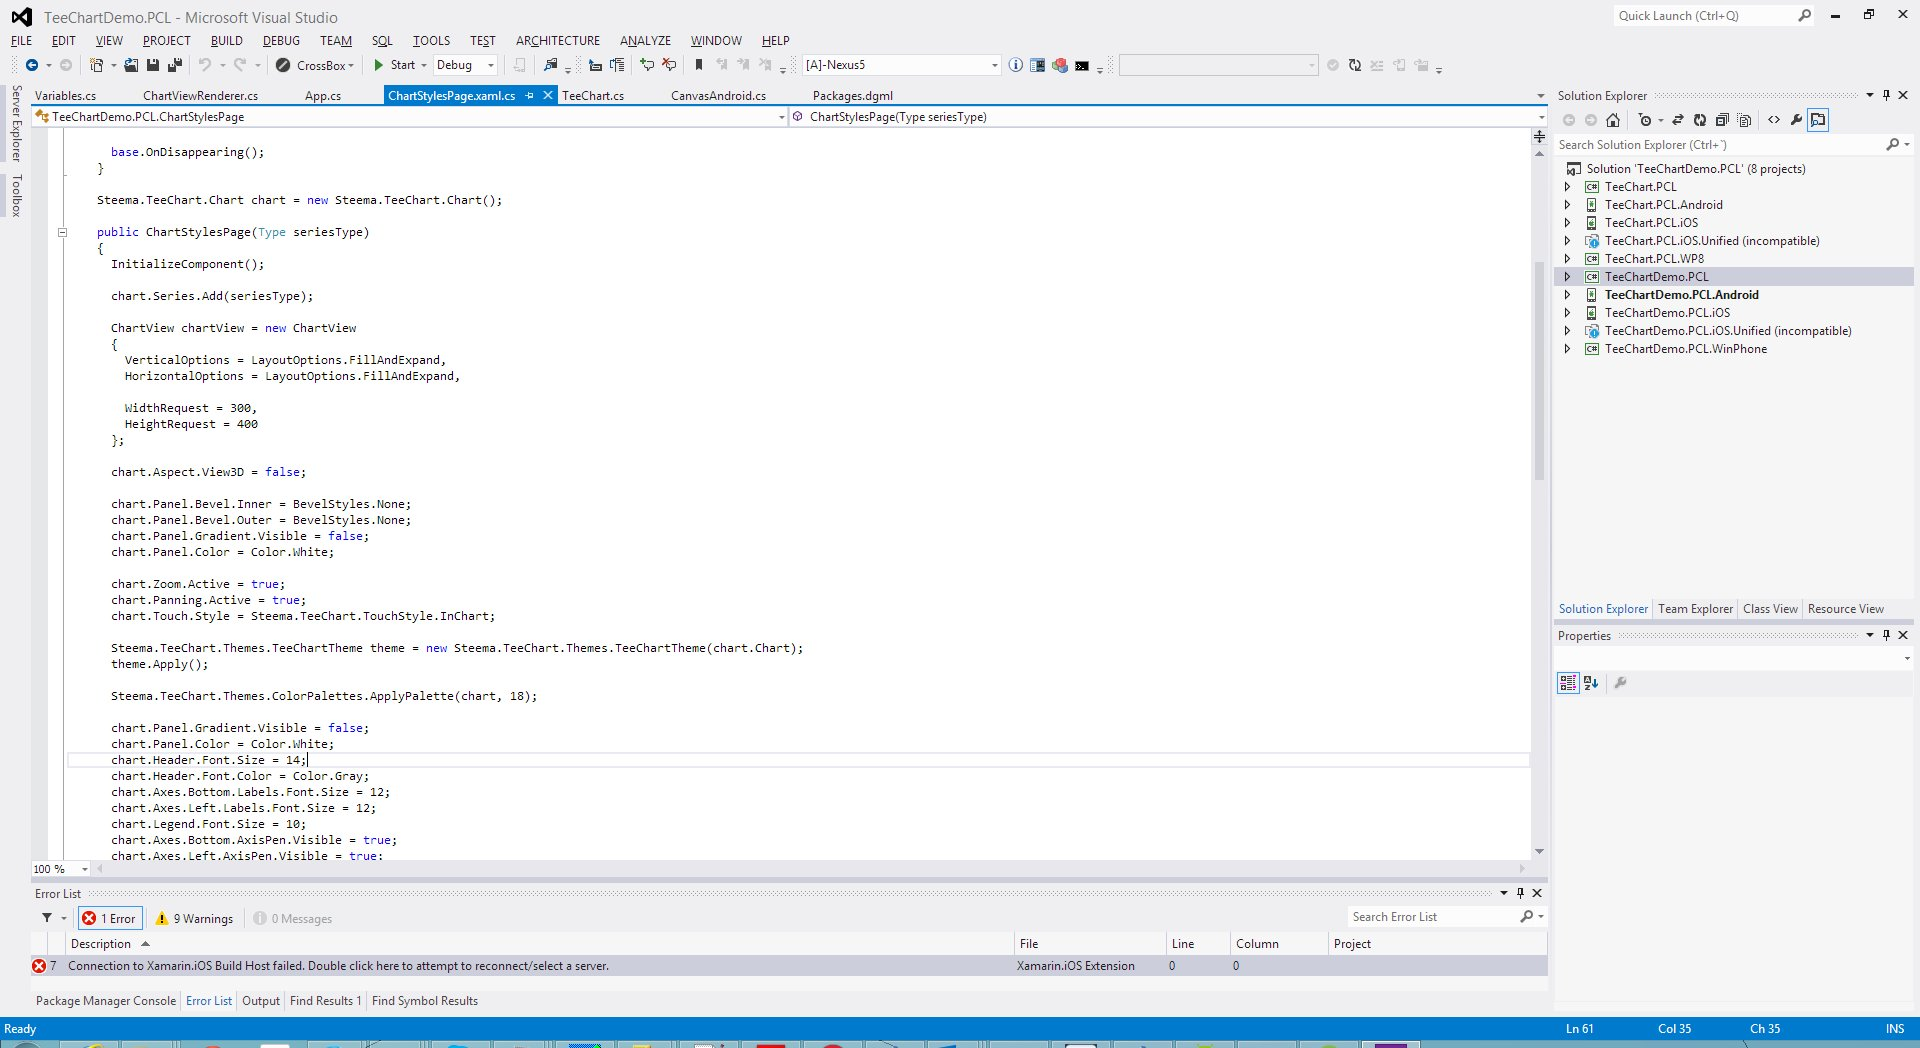 With Microsoft Visual Studio